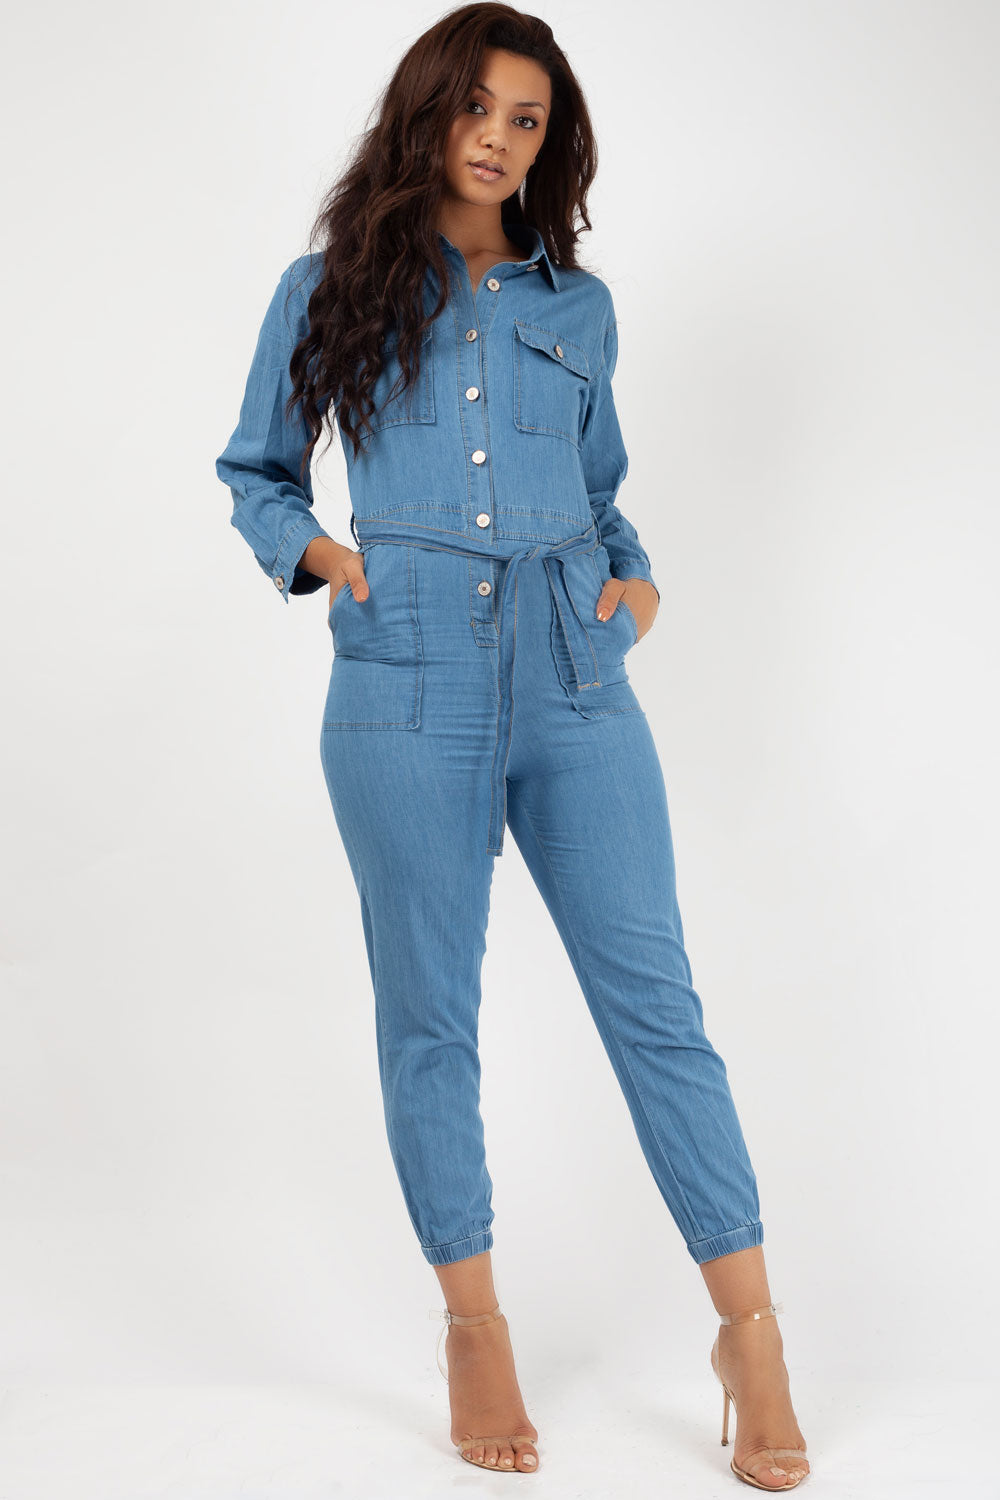 denim long sleeve jumpsuit styledup fashion